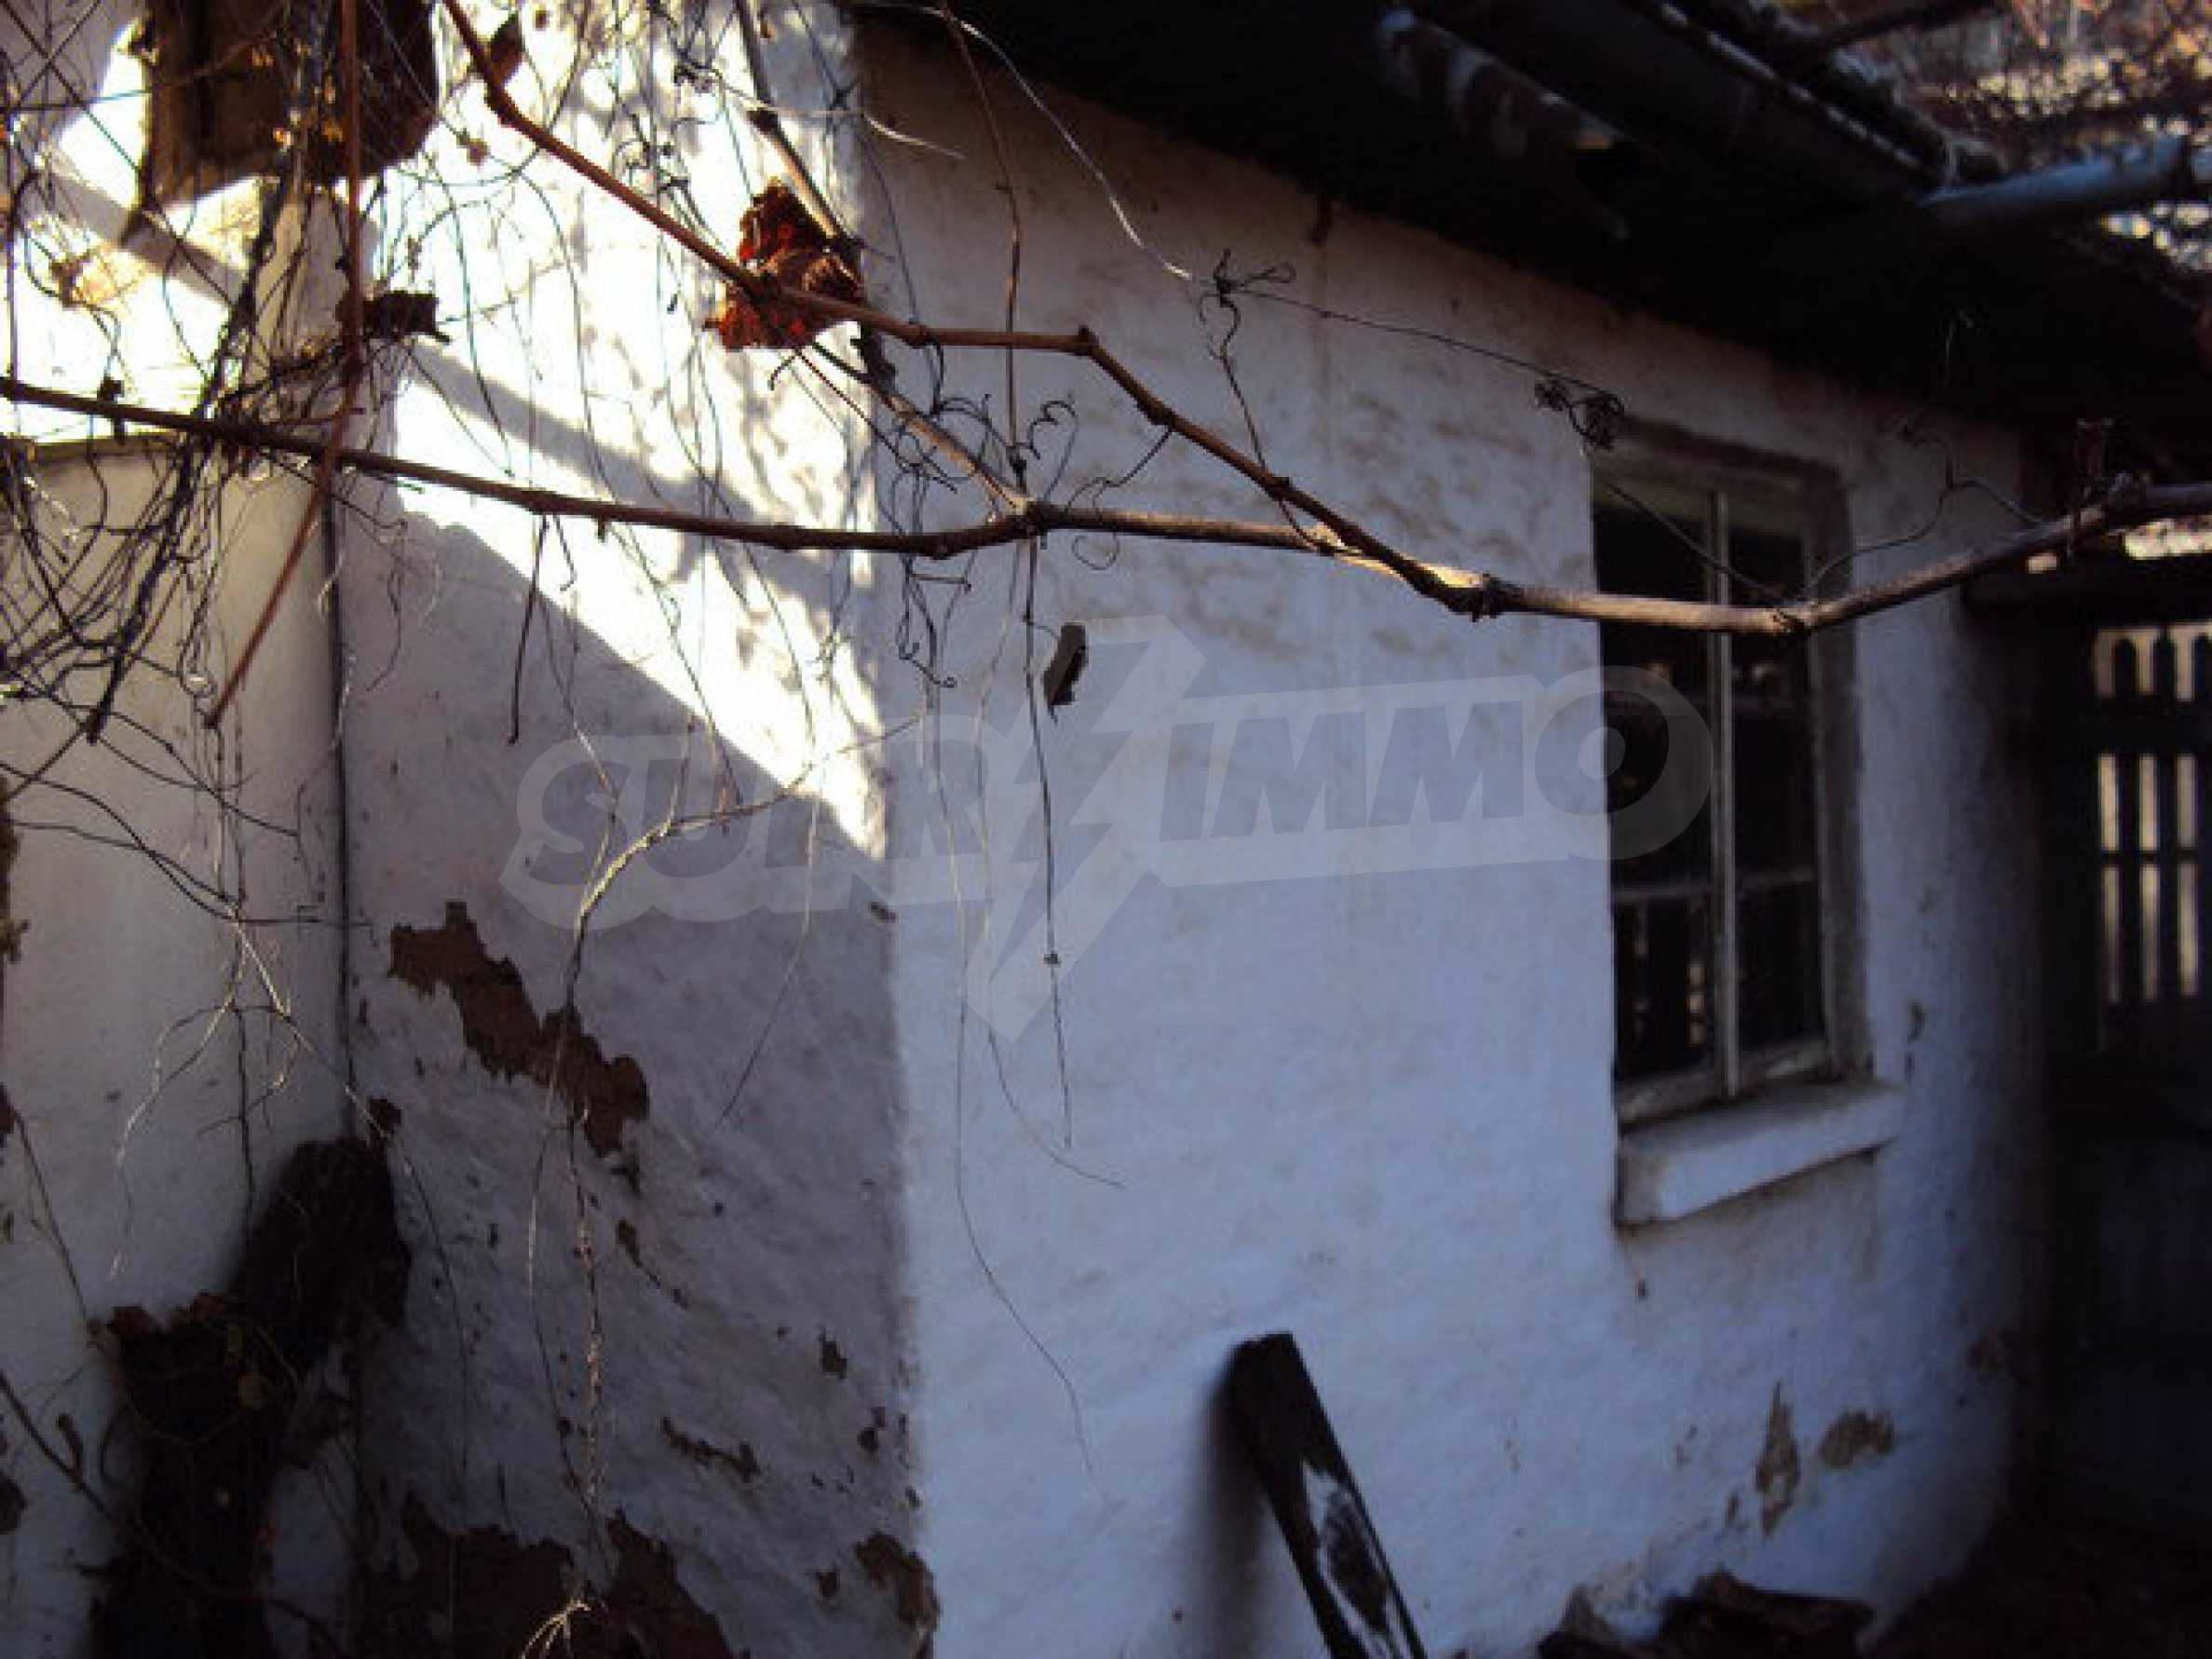 Spacious house in excellent condition in a village 25 km. the old capital of Veliko Tarnovo 41